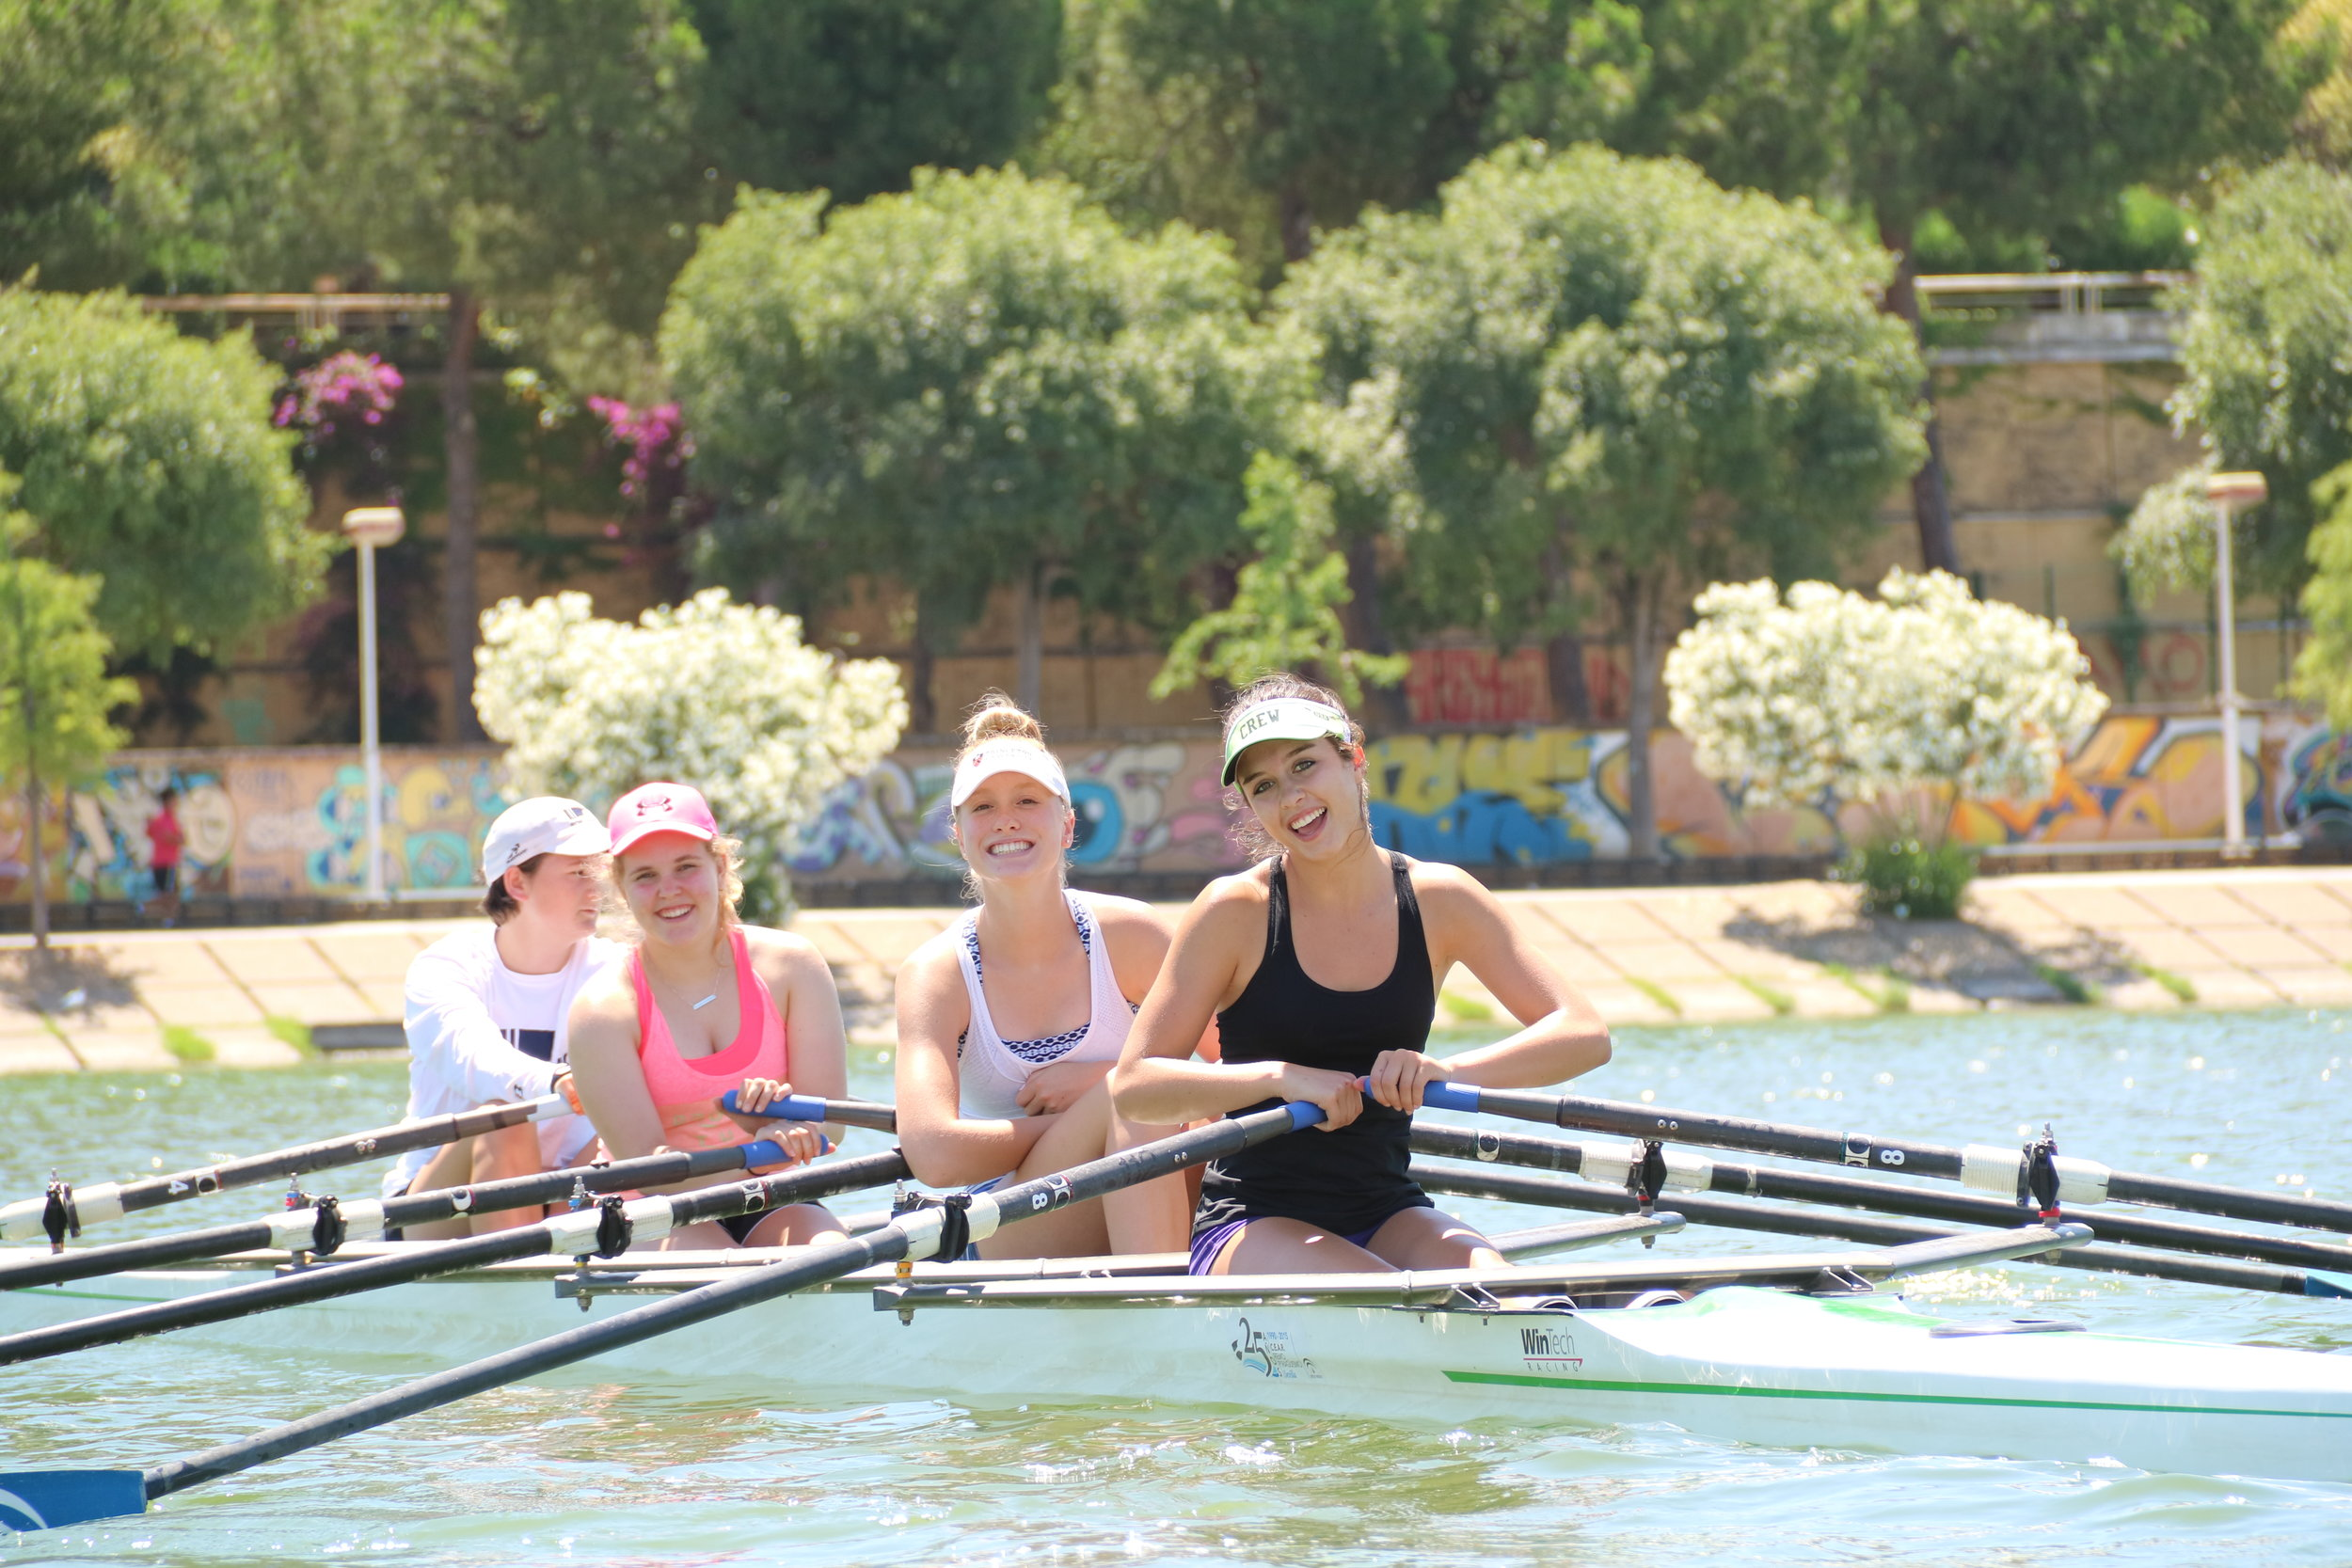 Fun rowing at the Spanish National Training Center in Sevilla